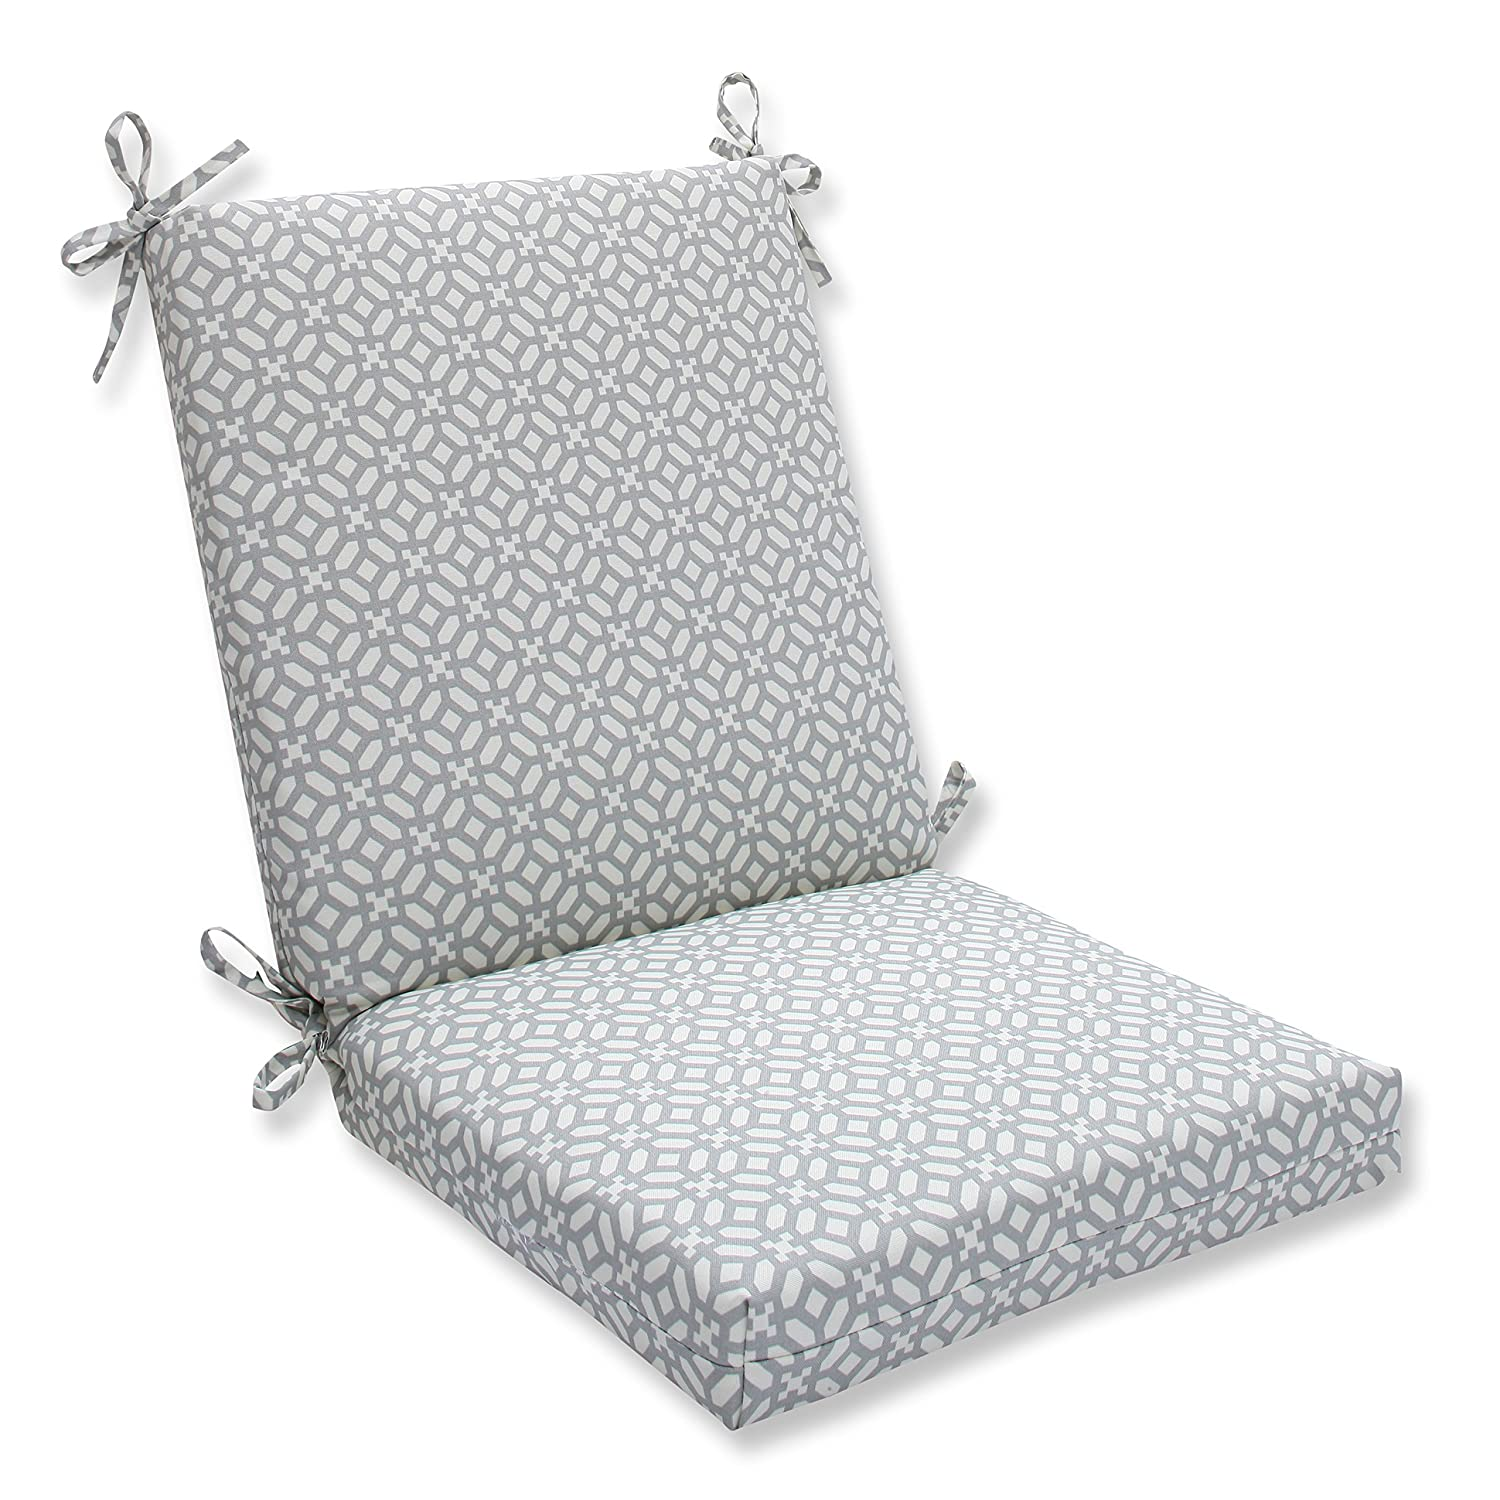 Pillow Perfect Outdoor/Indoor in The Frame Pebble Squared Corners Chair Cushion